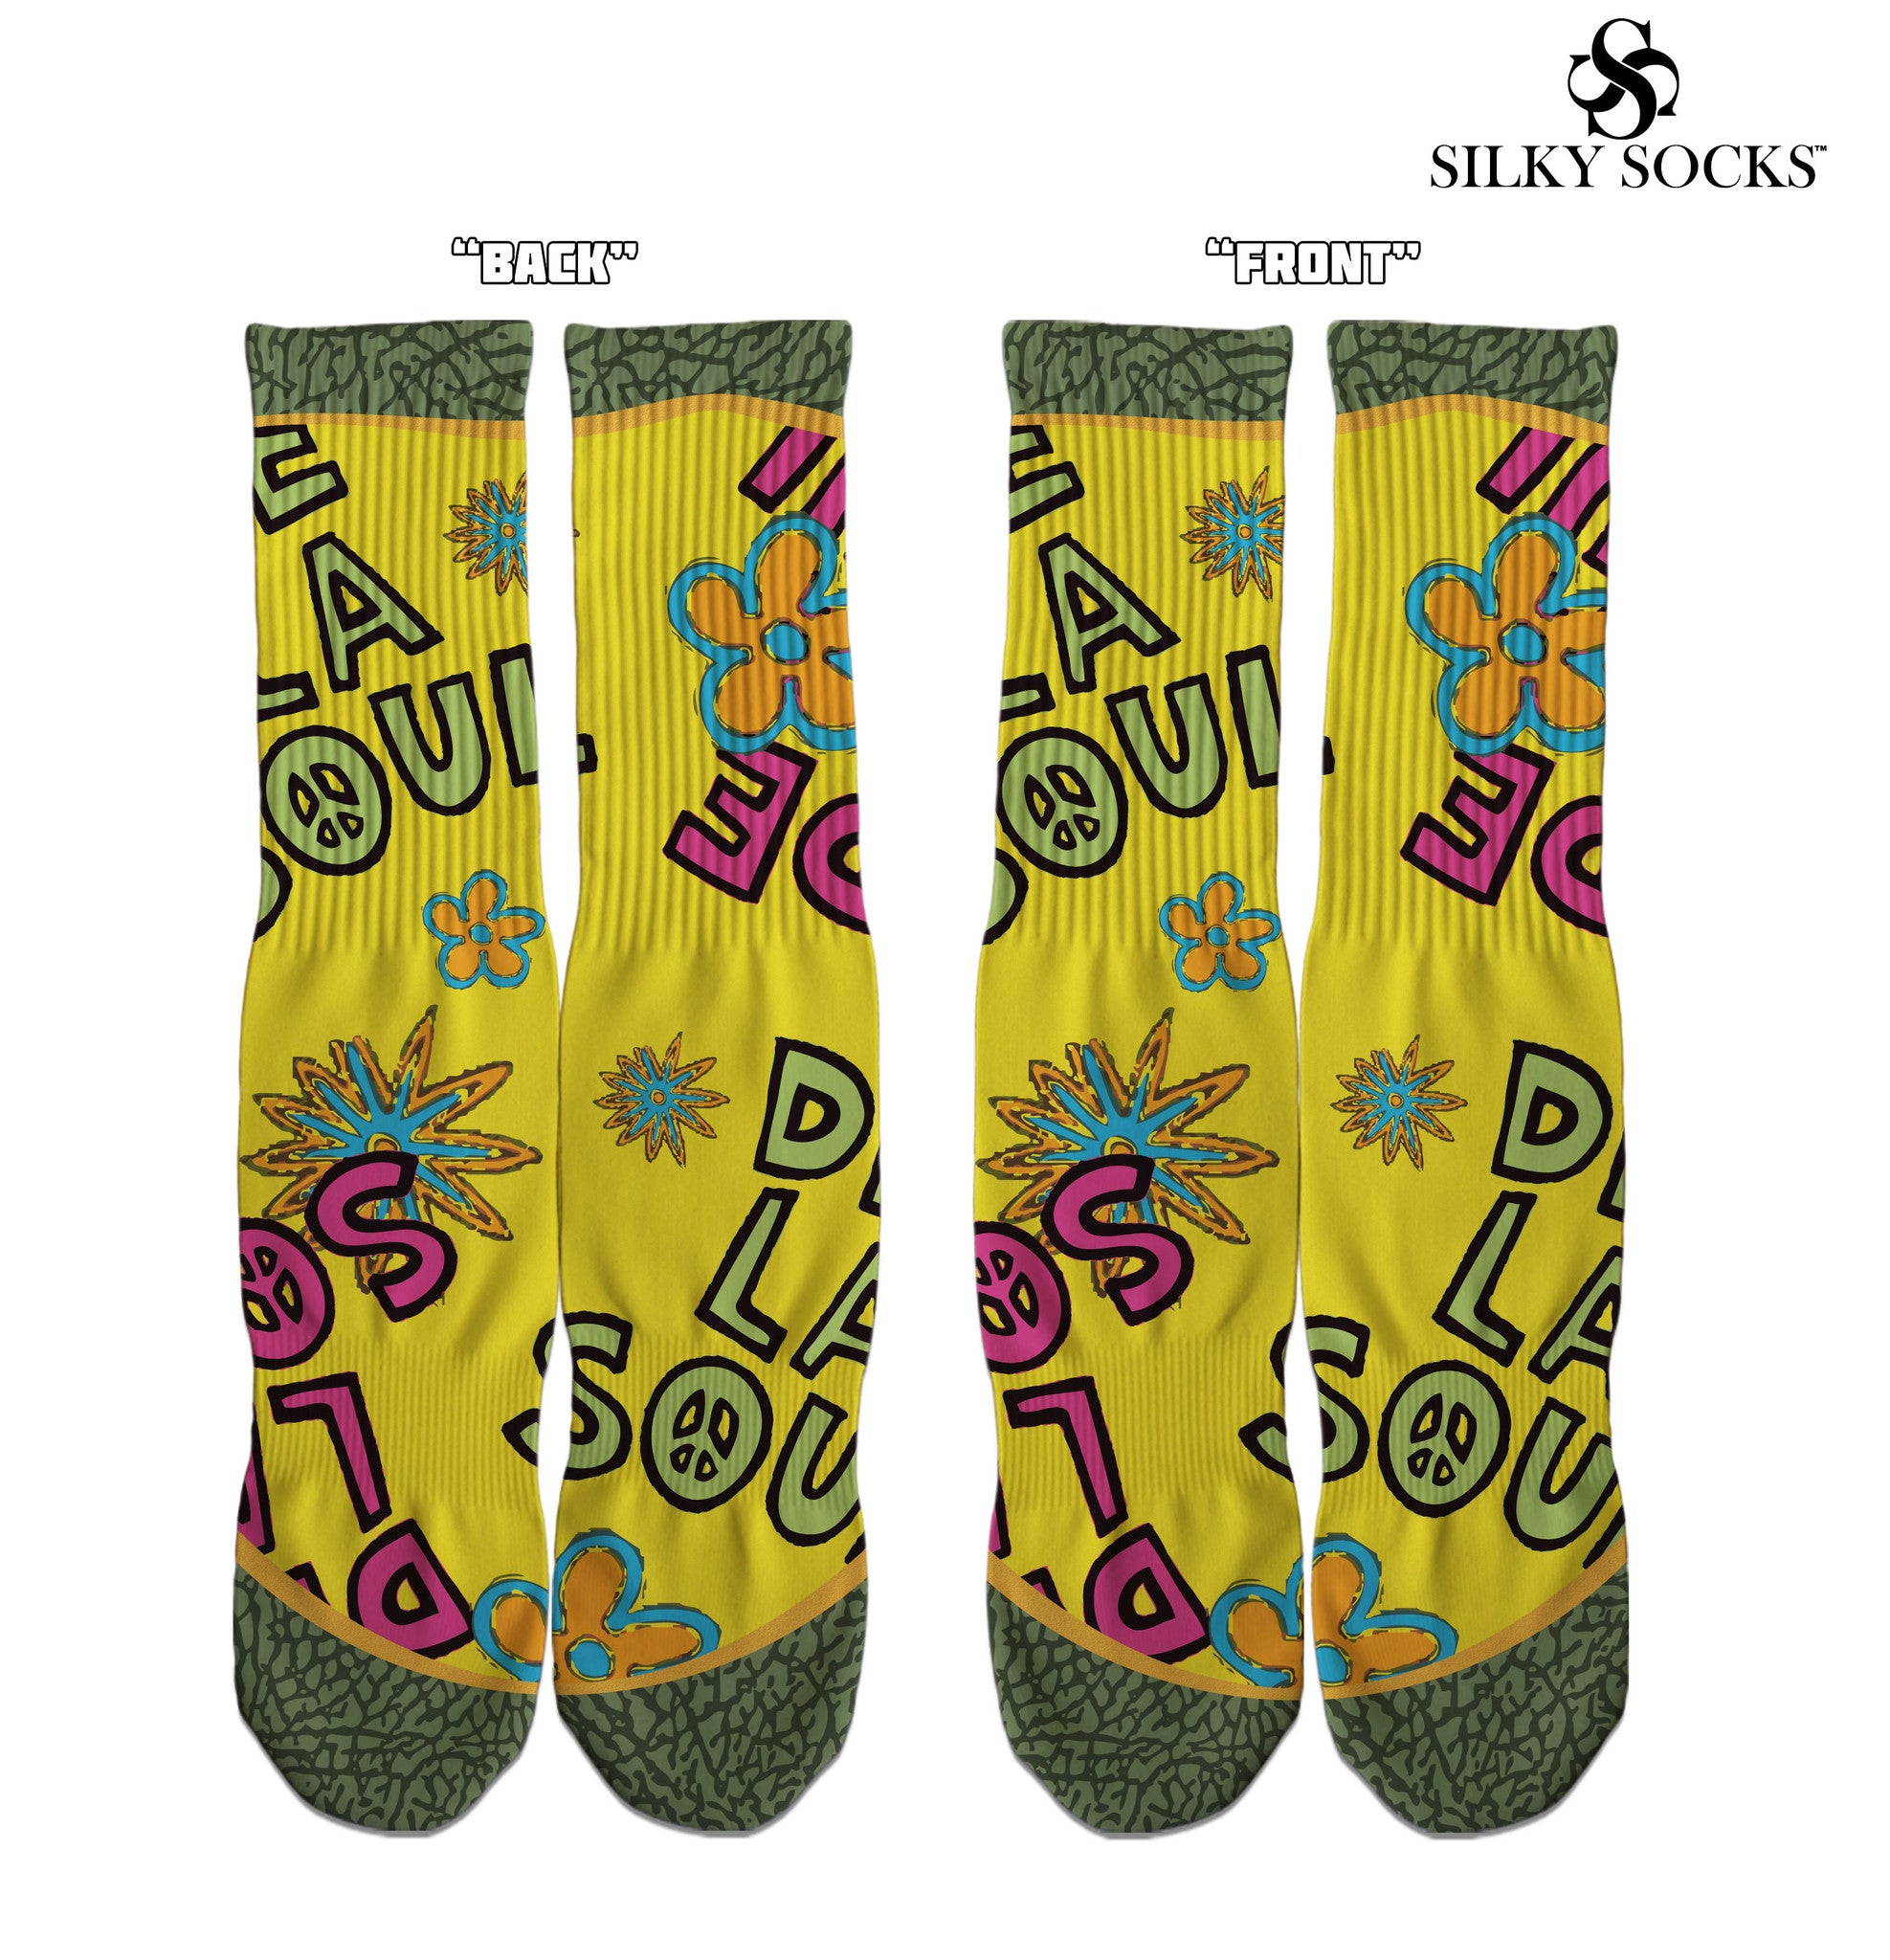 Soul Custom socks! - SILKY SOCKS - official store